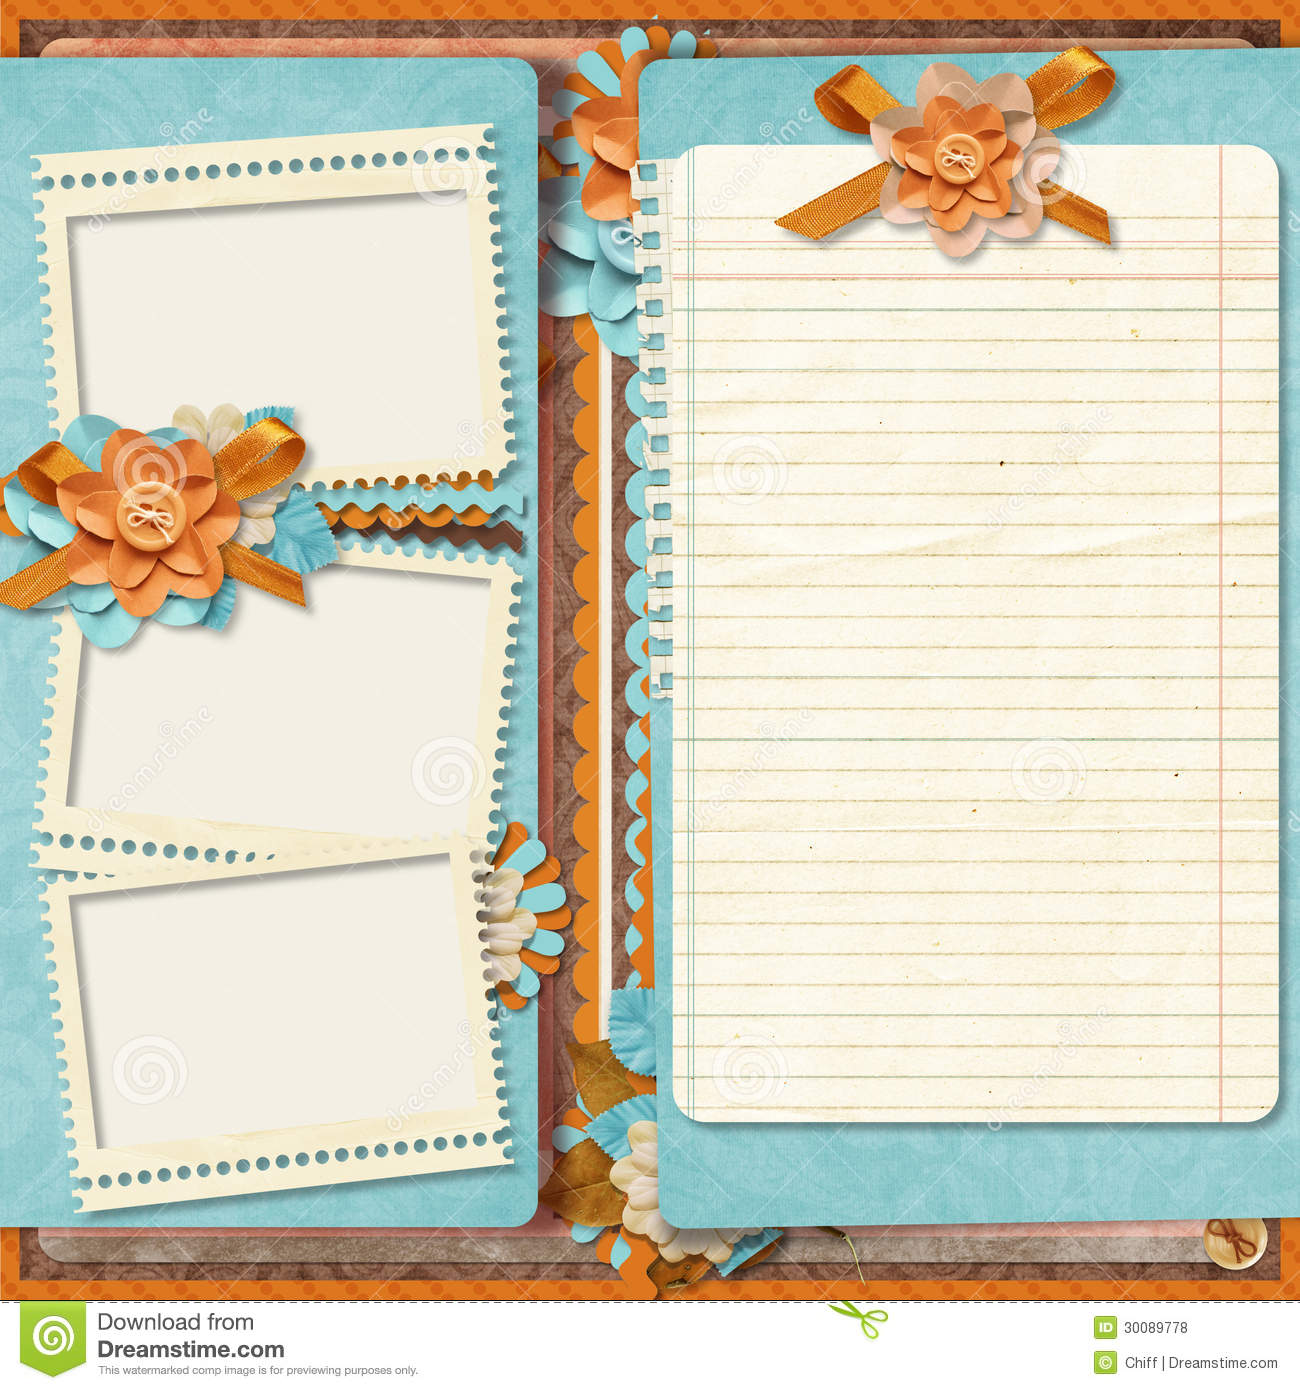 Retro family album365 project scrapbooking templates stock retro family album365 project scrapbooking templates maxwellsz